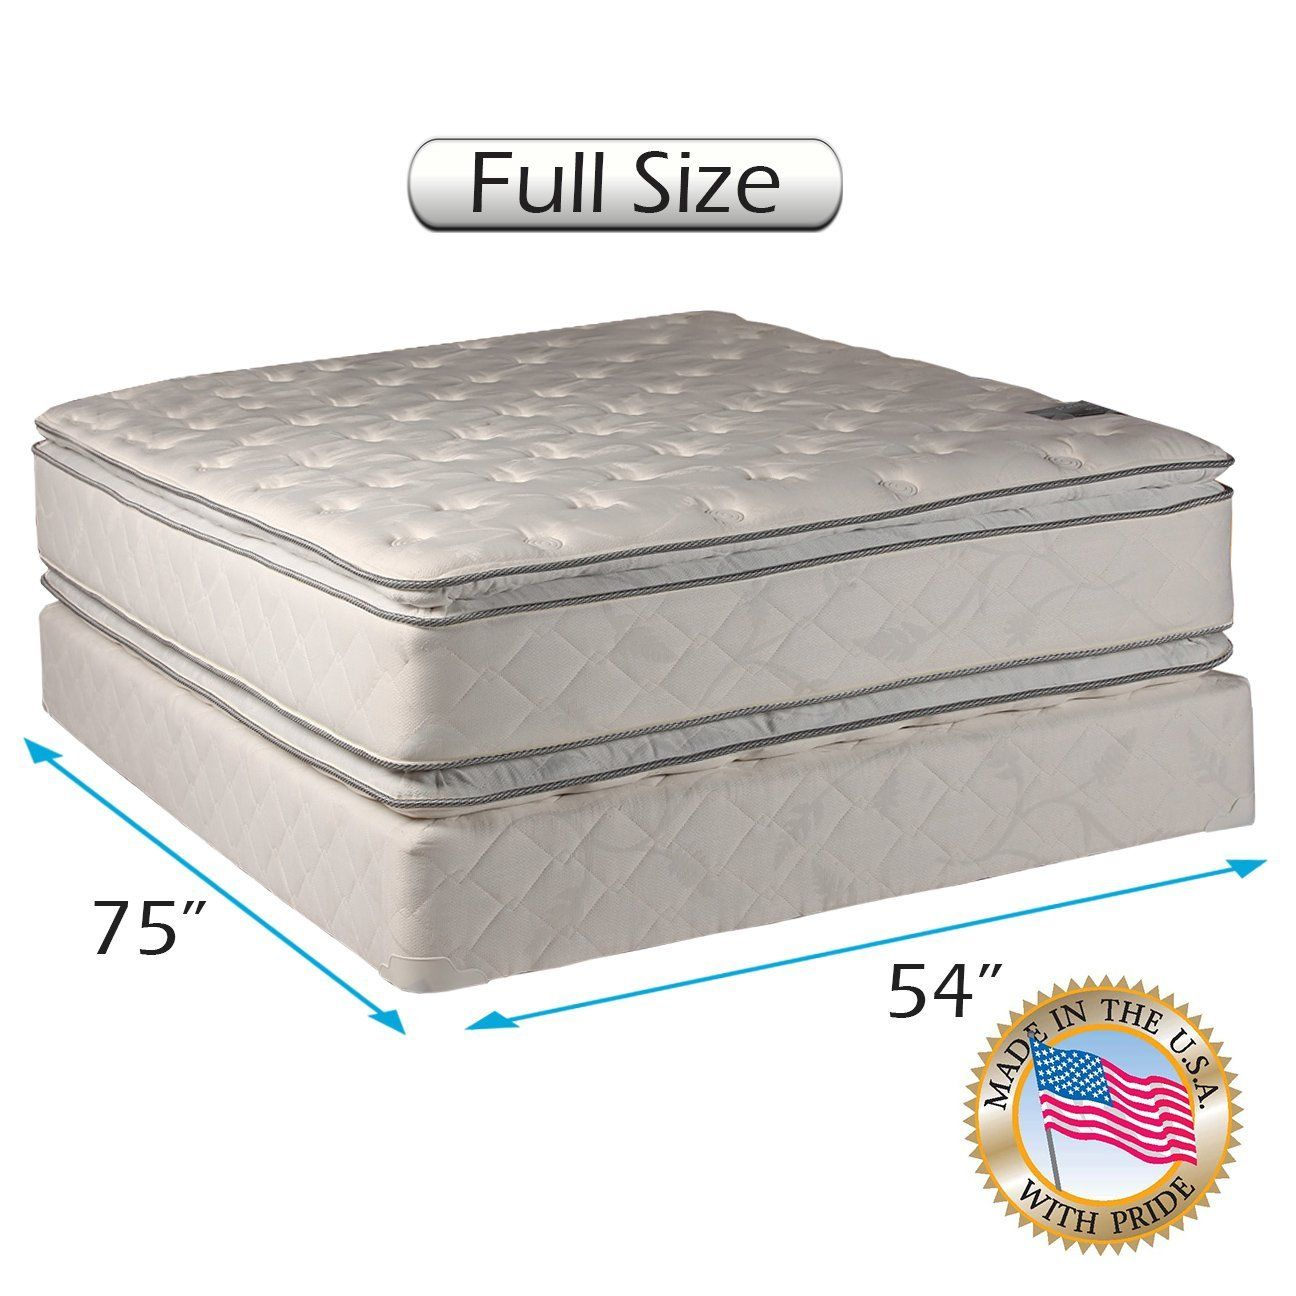 princess dream plush pillow top full size mattress and box spring